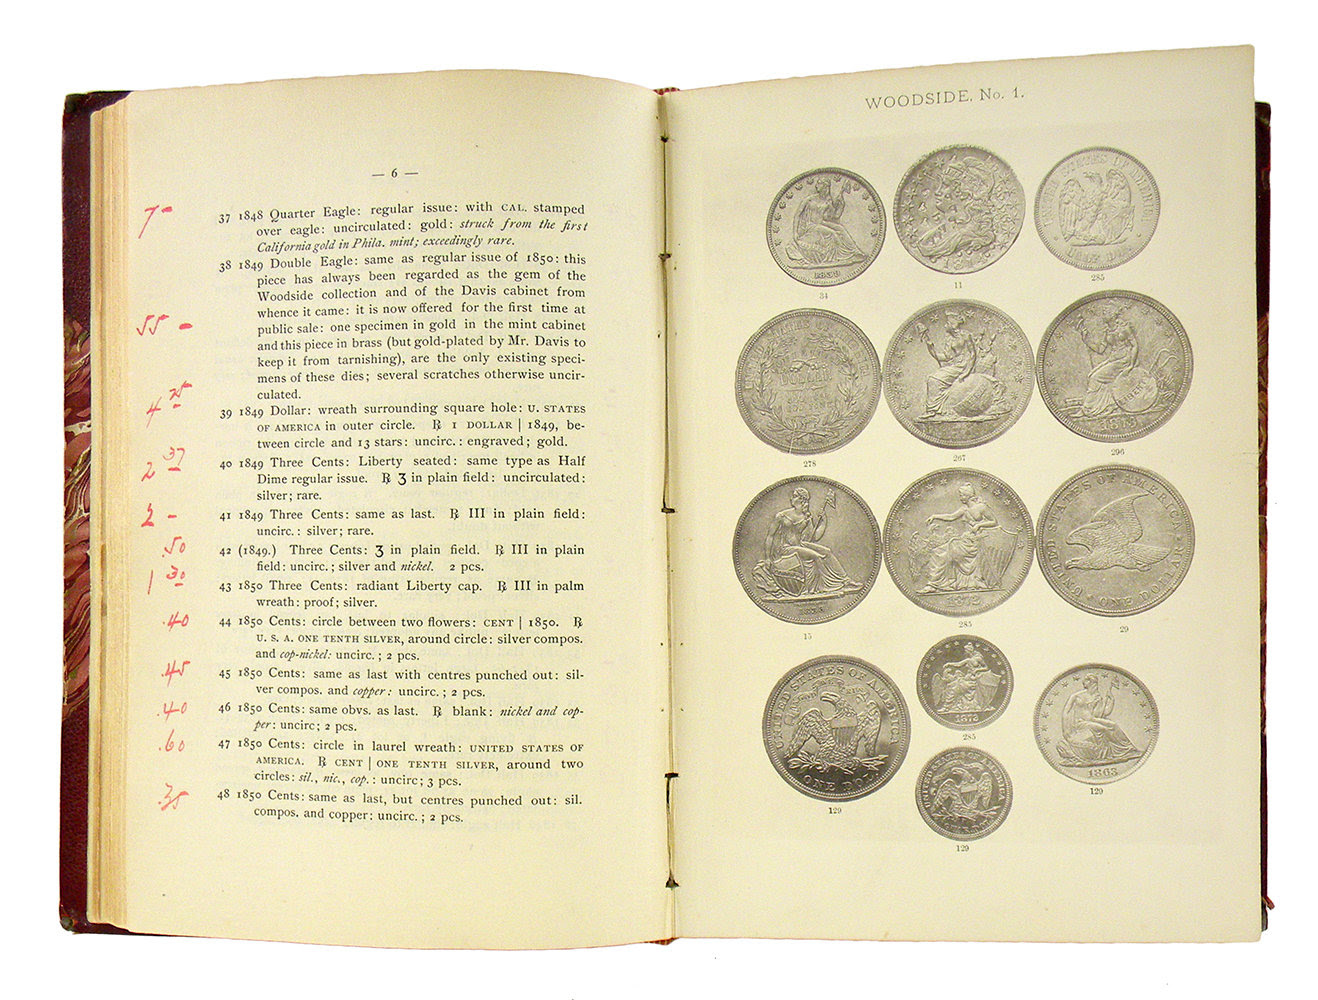 numismatic book auction - George Woodside collection catalogue, Edgar H. Adams library. Image courtesy Kolbe & Fanning